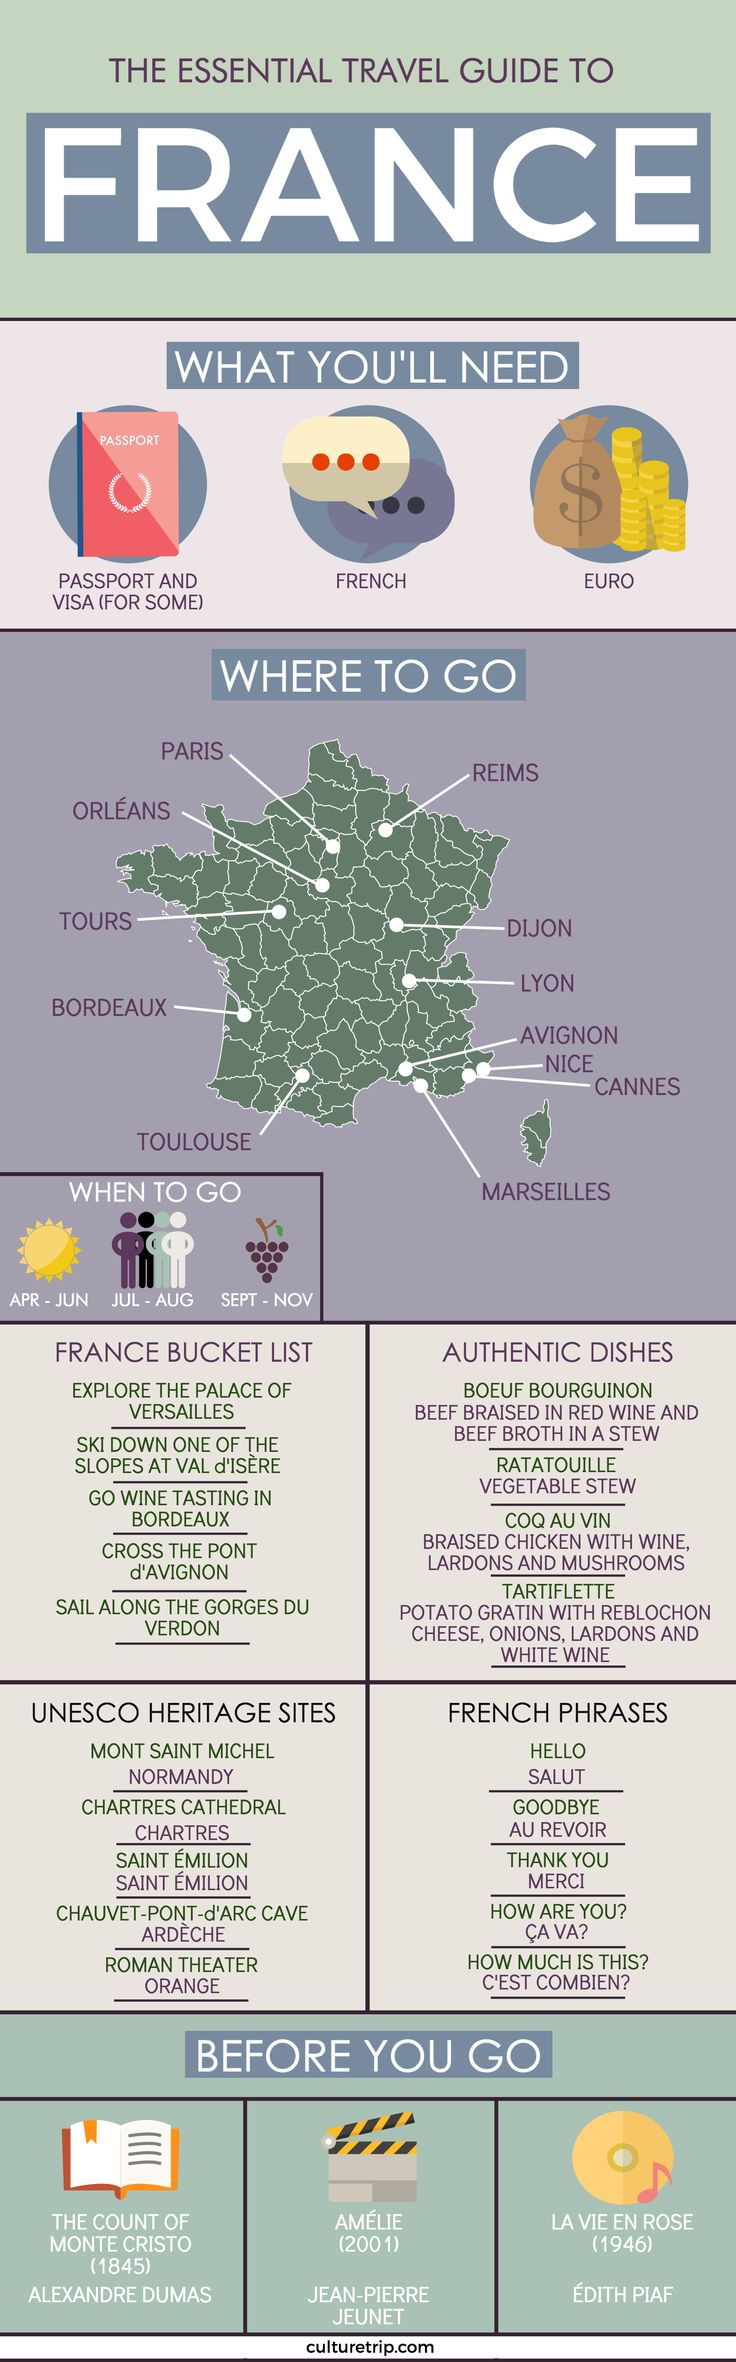 The Best Travel, Food and Culture Guides for France - Culture Trip's Essential Travel Guide to France. Nice img <3 #lovetotravel #funtravel